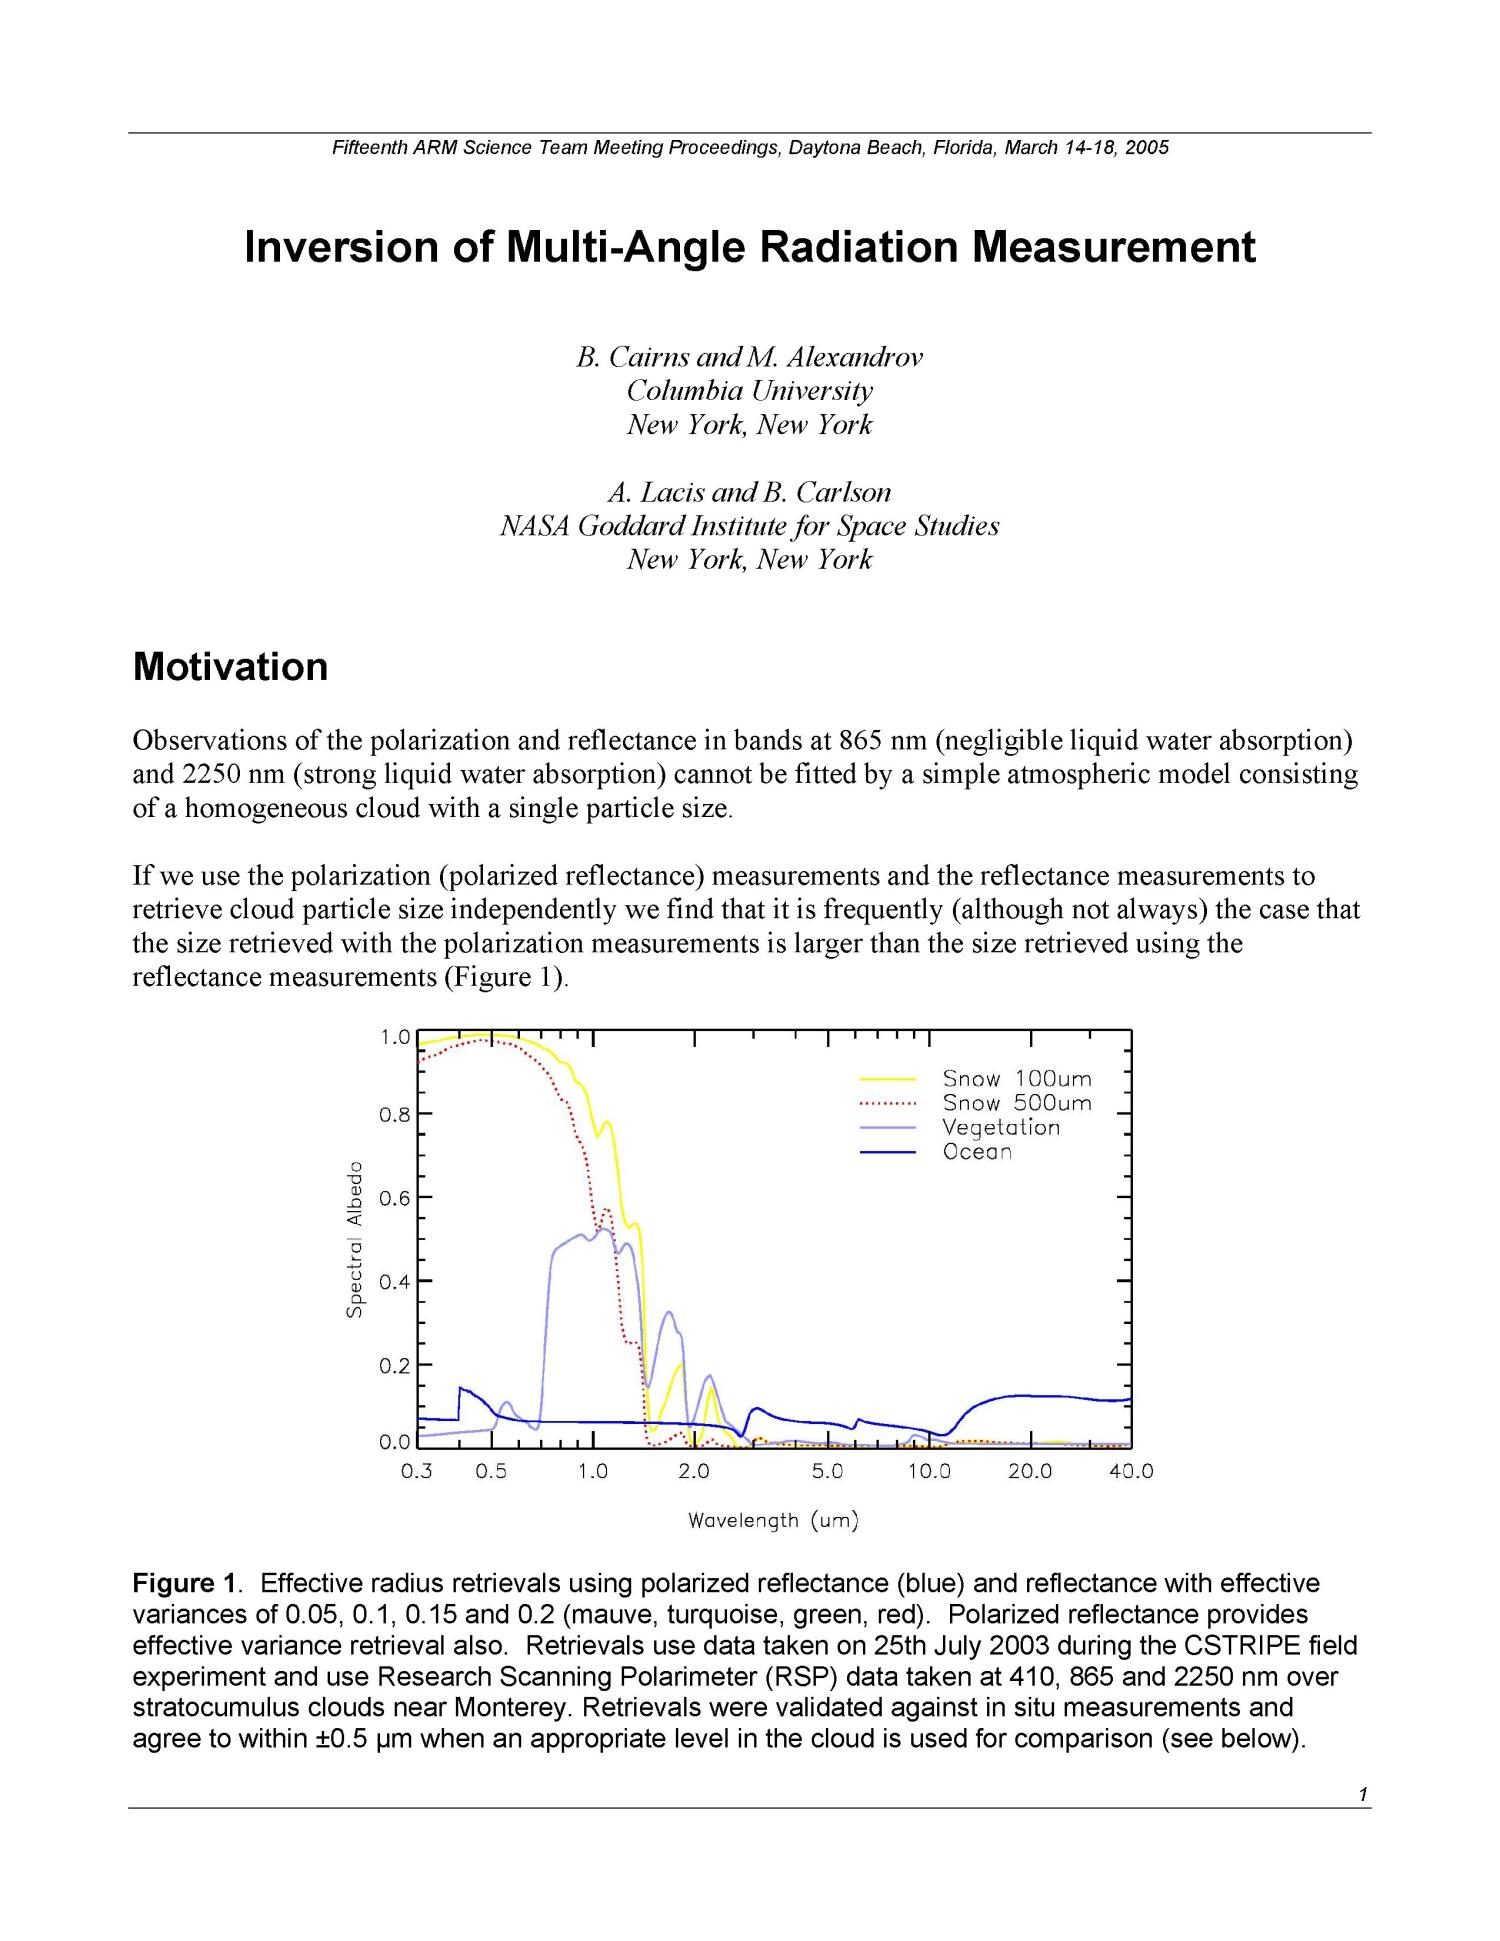 Inversion of Multi-Angle Radiation Measurement                                                                                                      [Sequence #]: 1 of 8